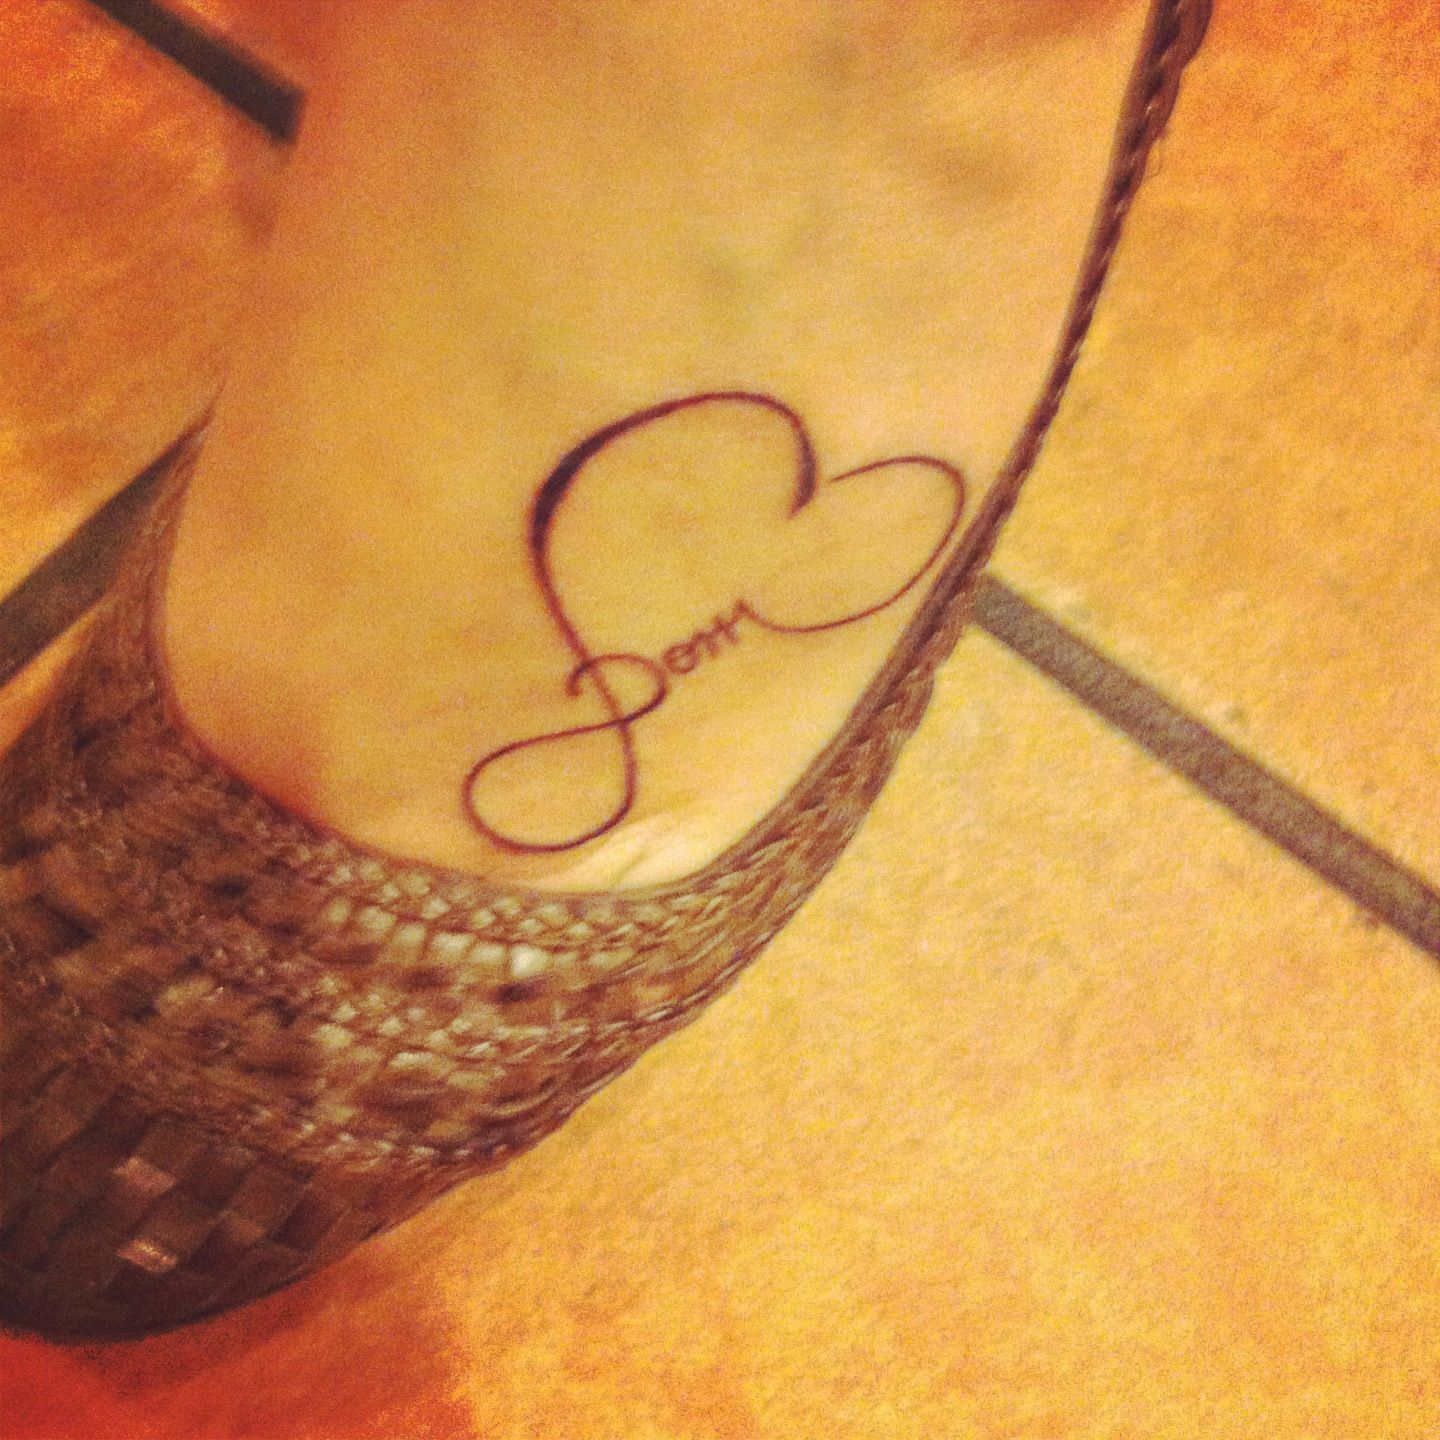 Infinity symbol she put a loved ones name in there who passed infinity symbol she put a loved ones name in there who passed away infinity hearttattoo biocorpaavc Image collections